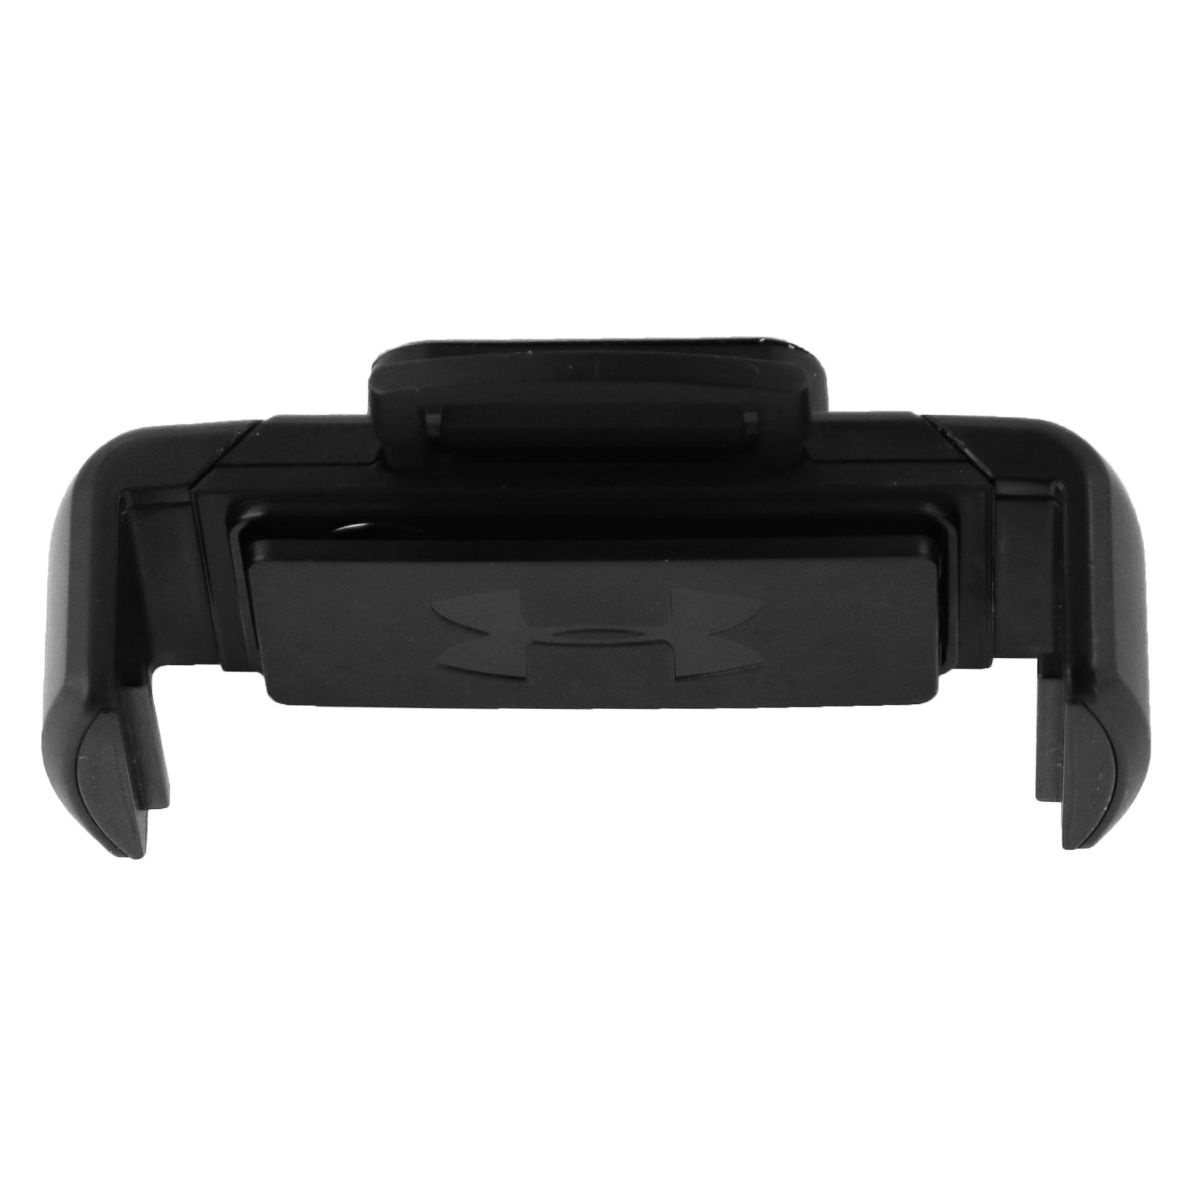 Under Armour UA Connect Magnetic Grip Mount for Most Smartphones - Black